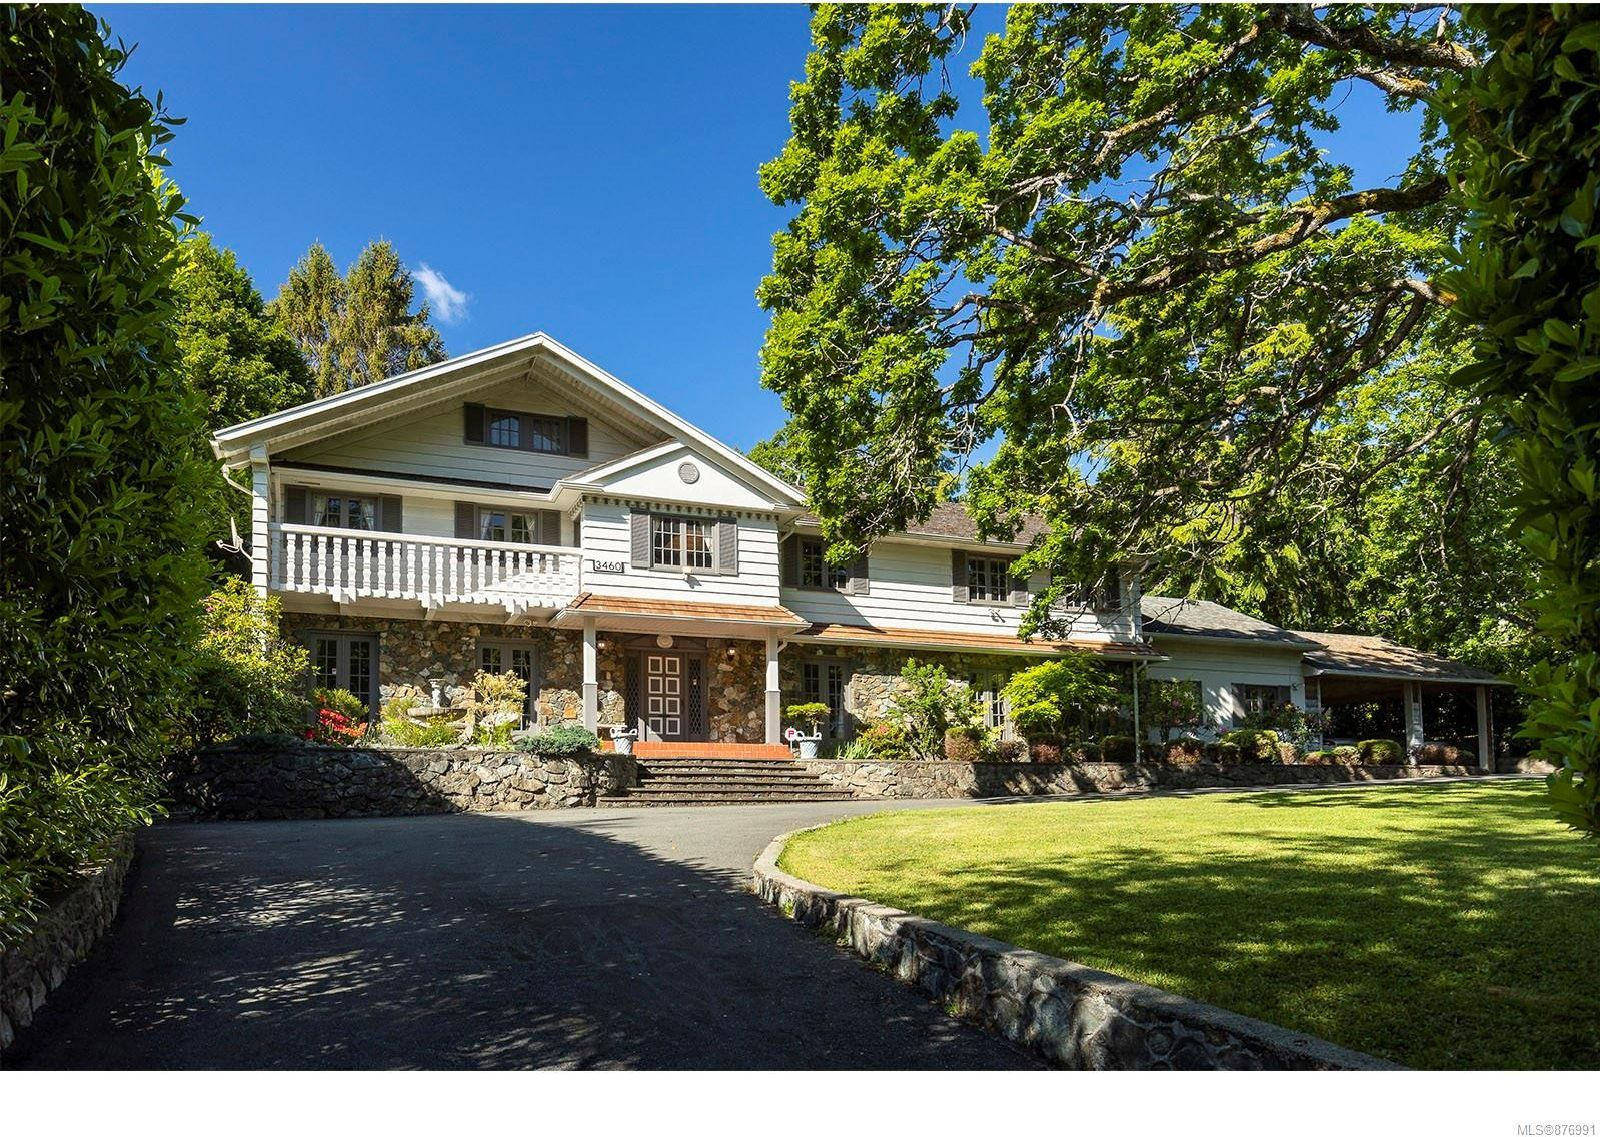 Main Photo: 3460 Beach Dr in : OB Uplands House for sale (Oak Bay)  : MLS®# 876991